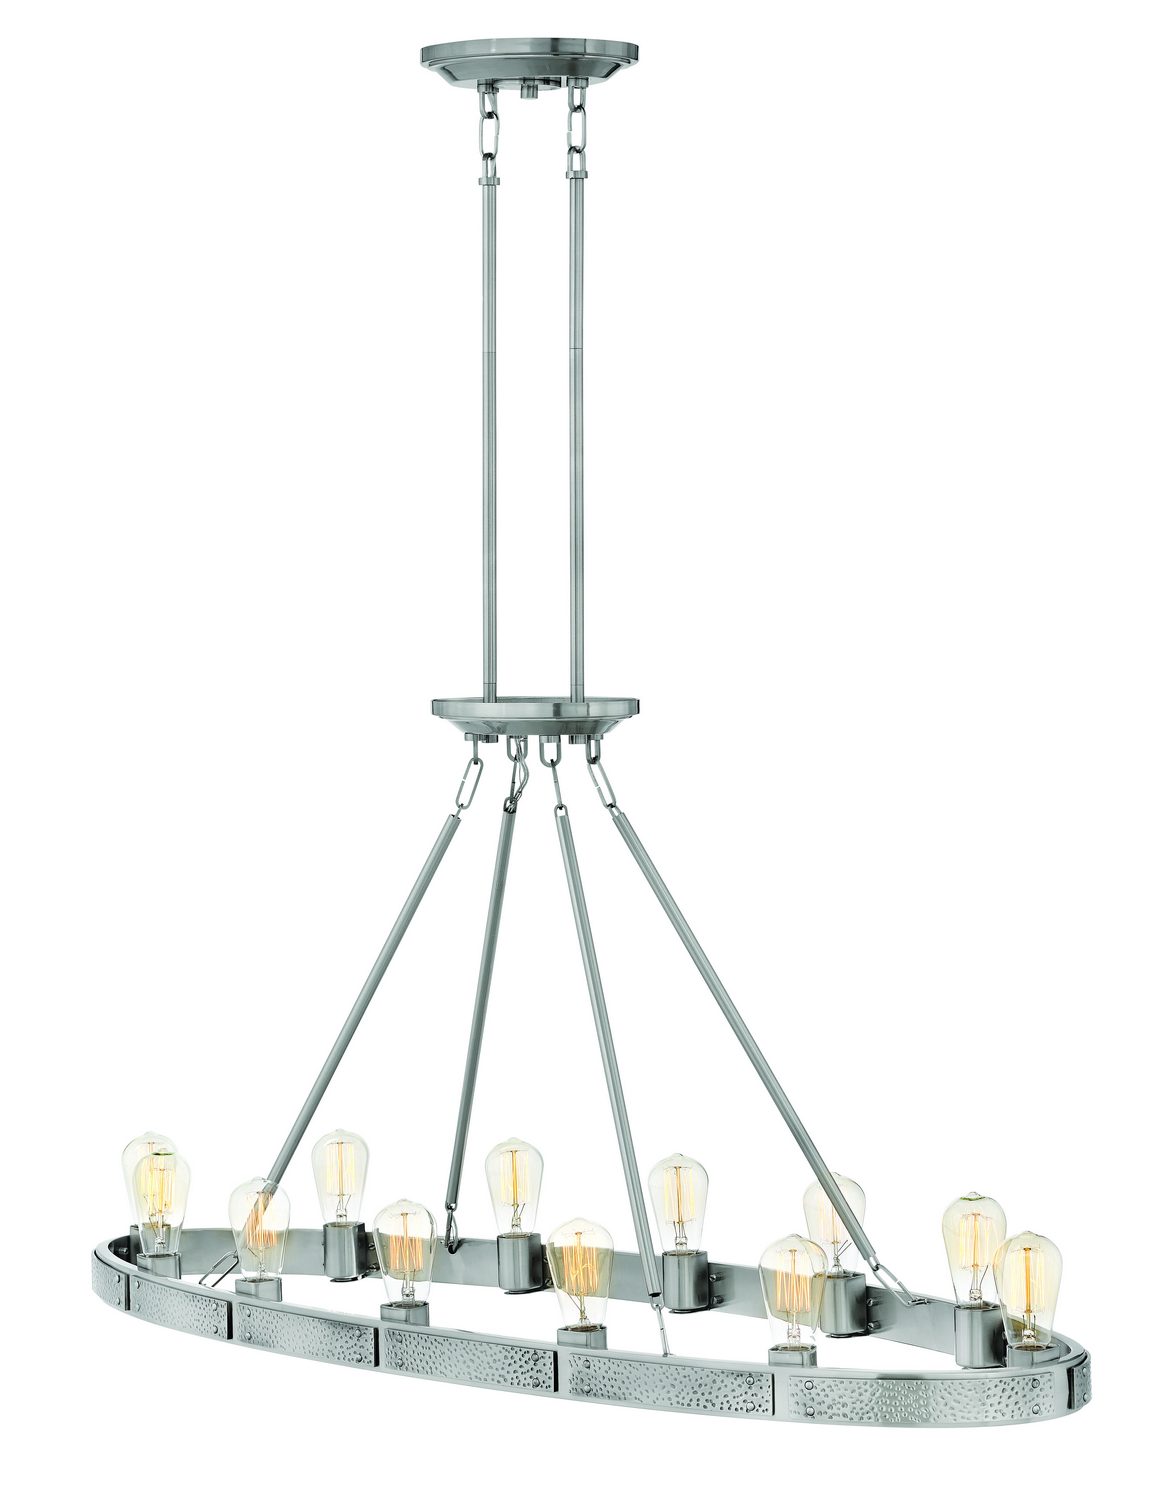 12 Light Linear Chandelier from the Everett collection by Hinkley 4396BN